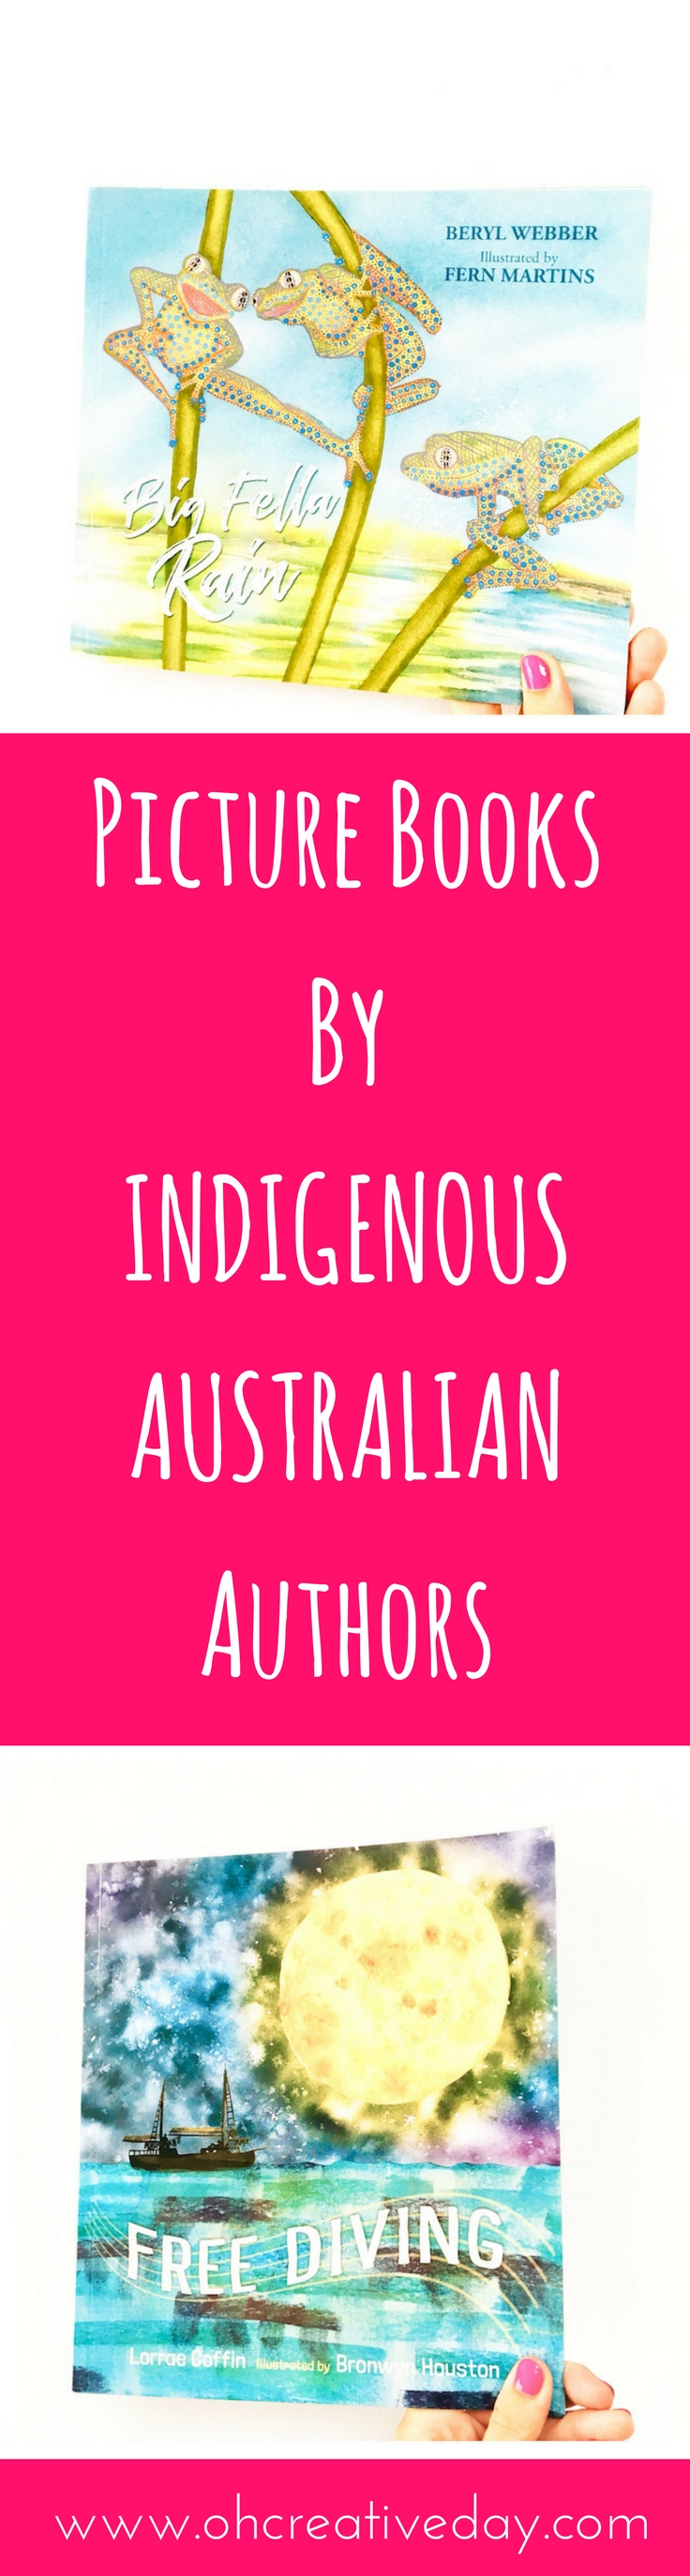 Looking to add more diverse Indigenous voices and perspectives to your child's book collection? Here are 6 recently published picture books by Indigenous Australian authors to add to your bookshelves.